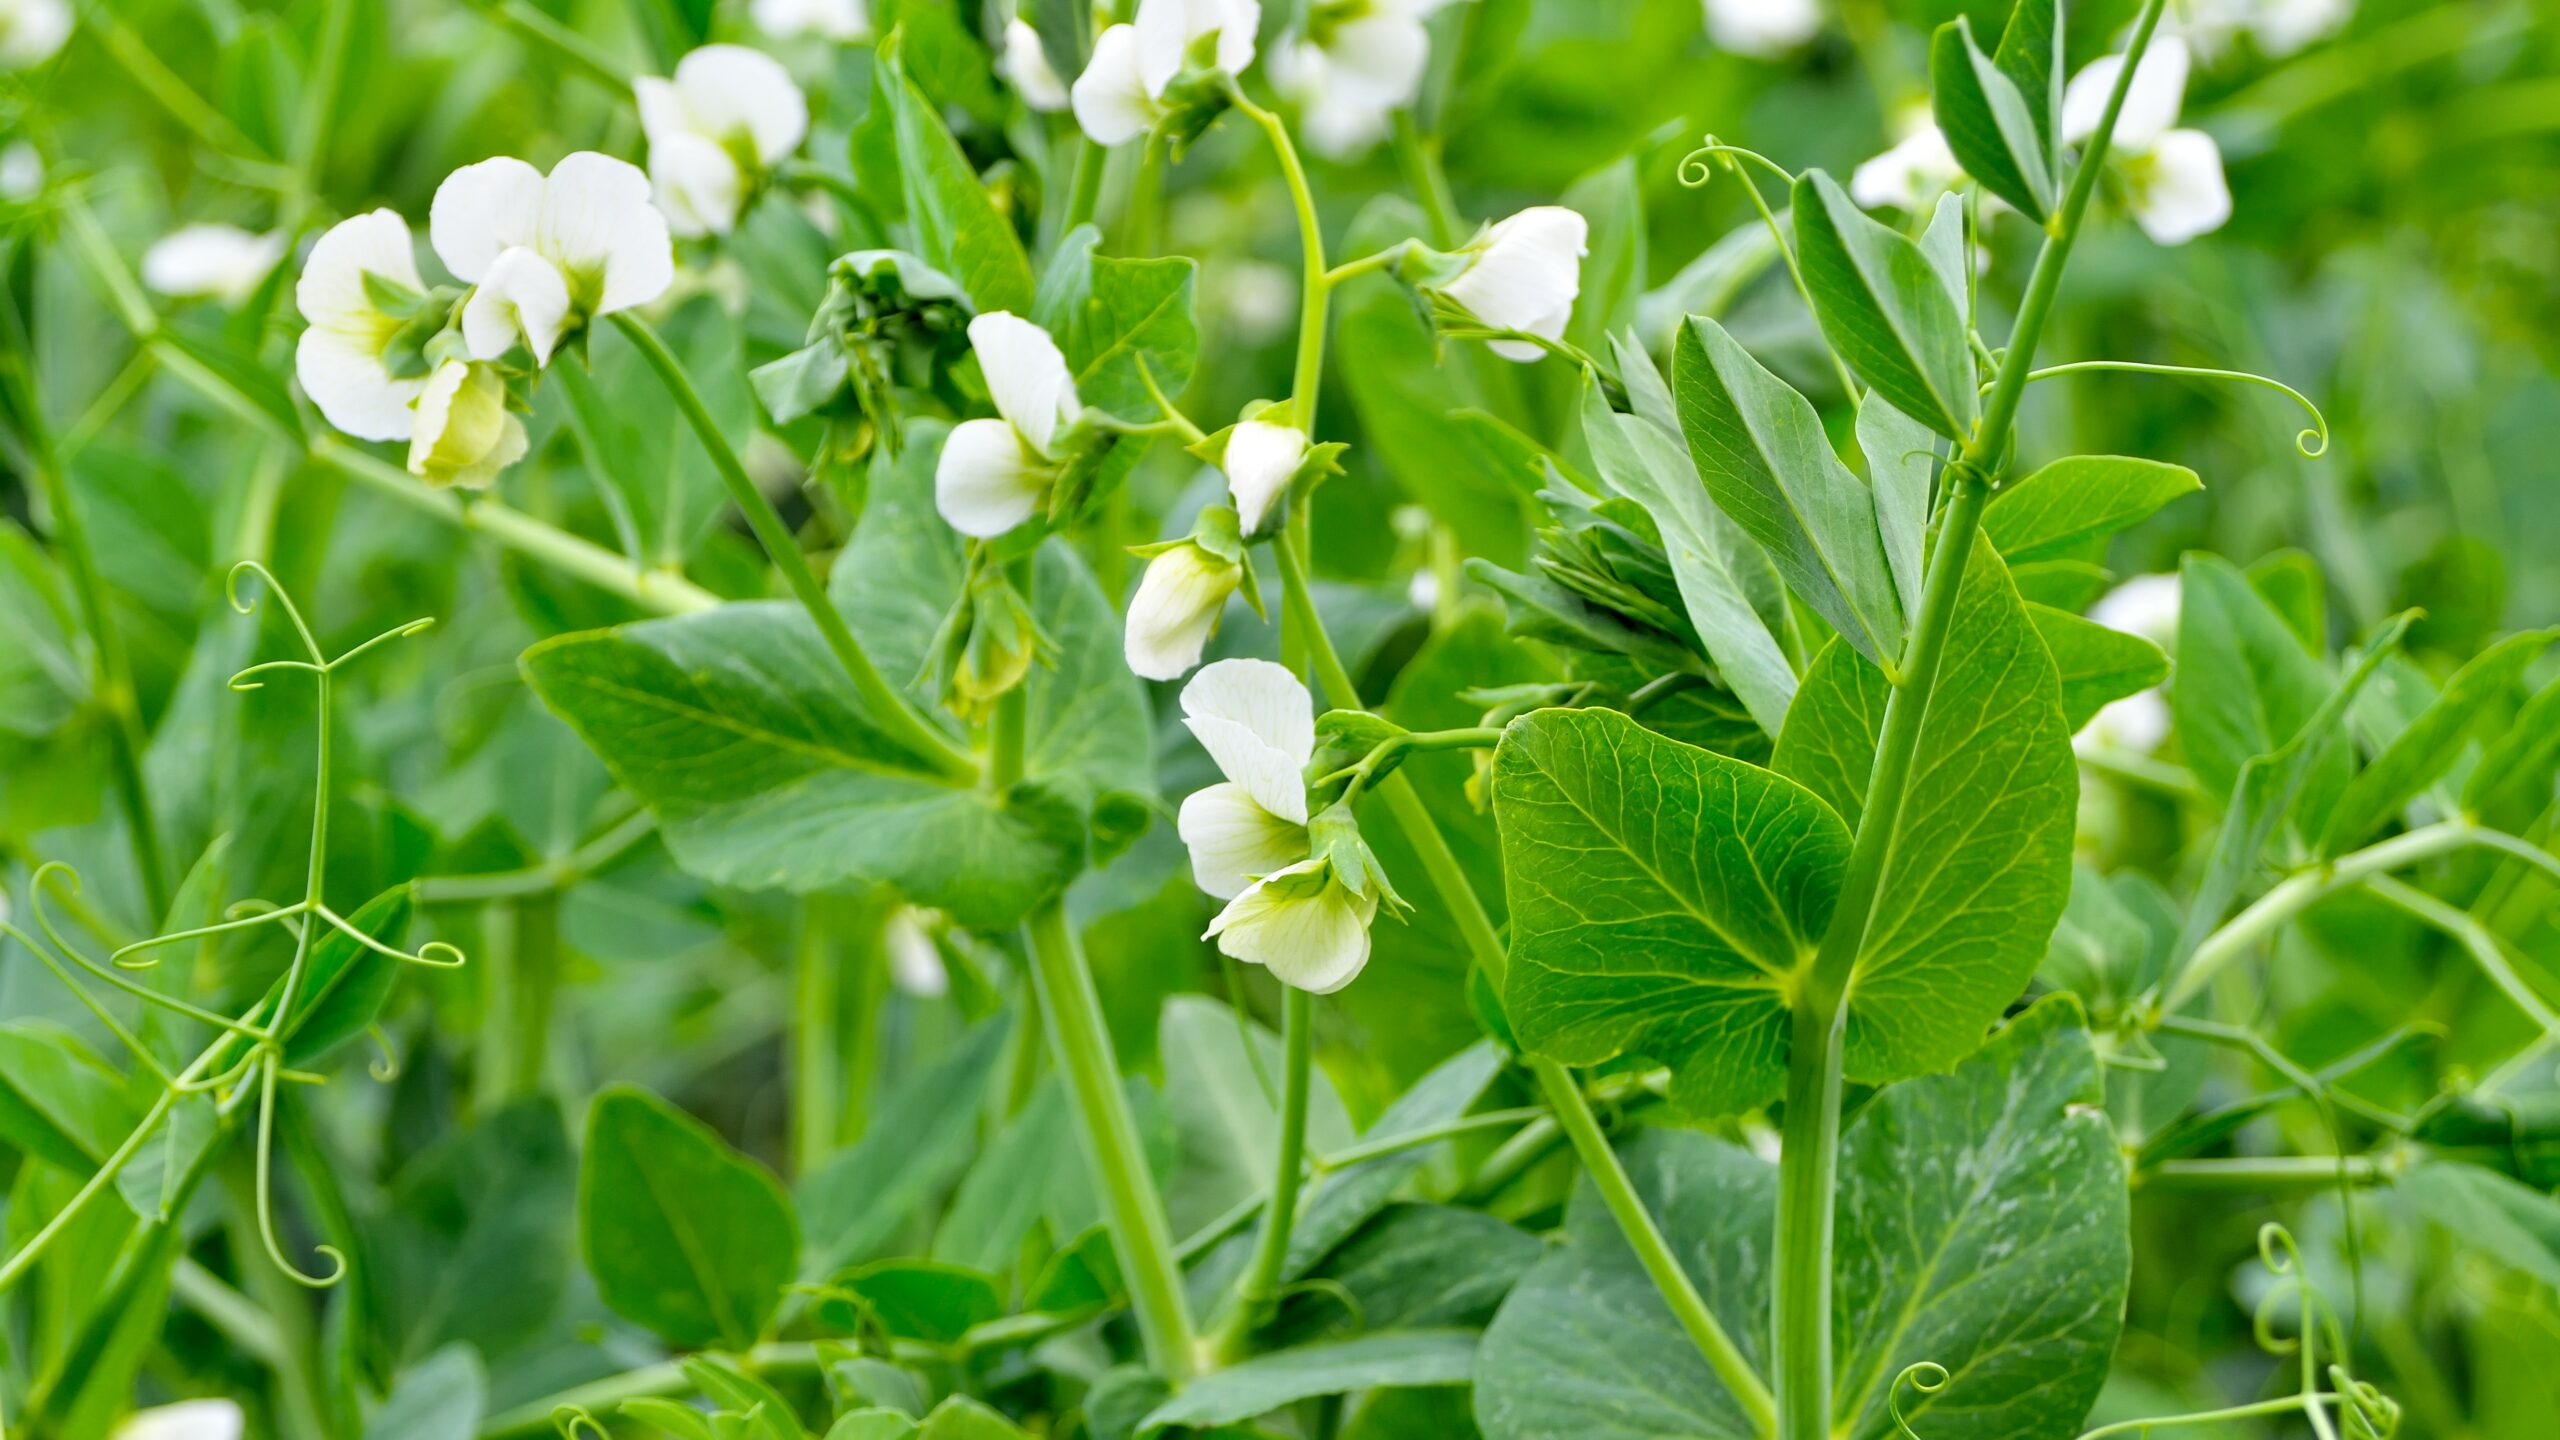 Young shoots and flowers in a field of peas.